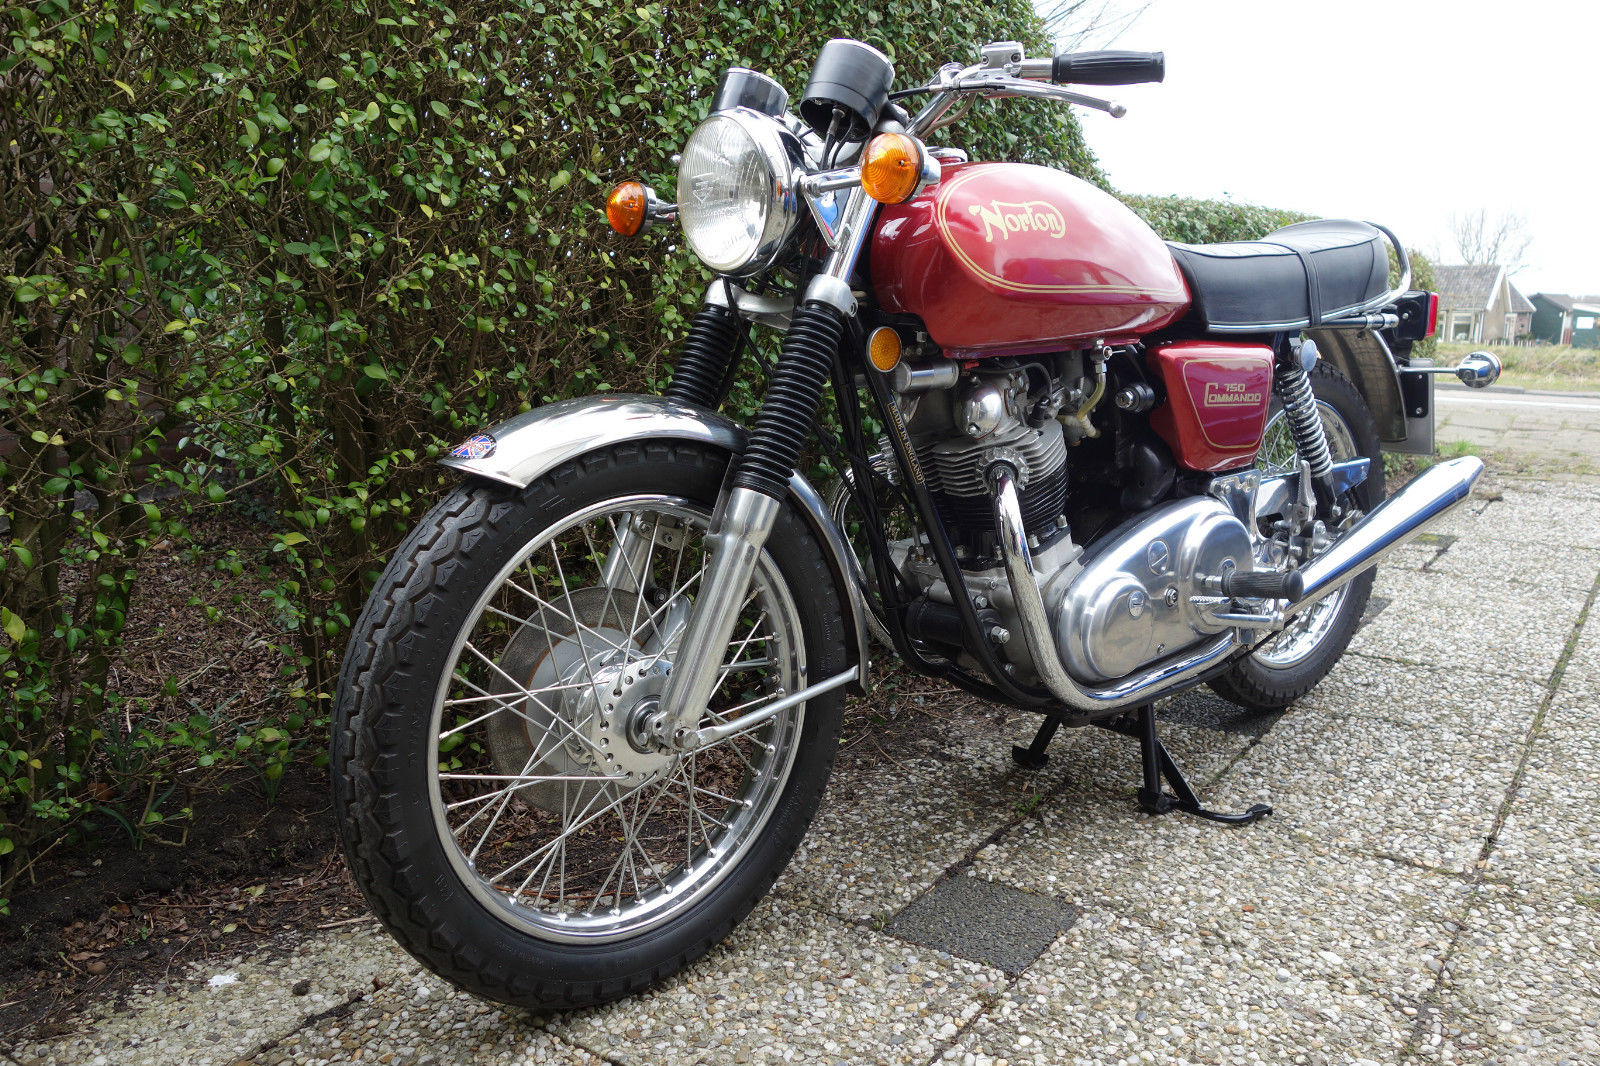 Norton Commando 750 - 1971 - Front Mudguard, Front Forks, Wheel, Headlight and Indicators.